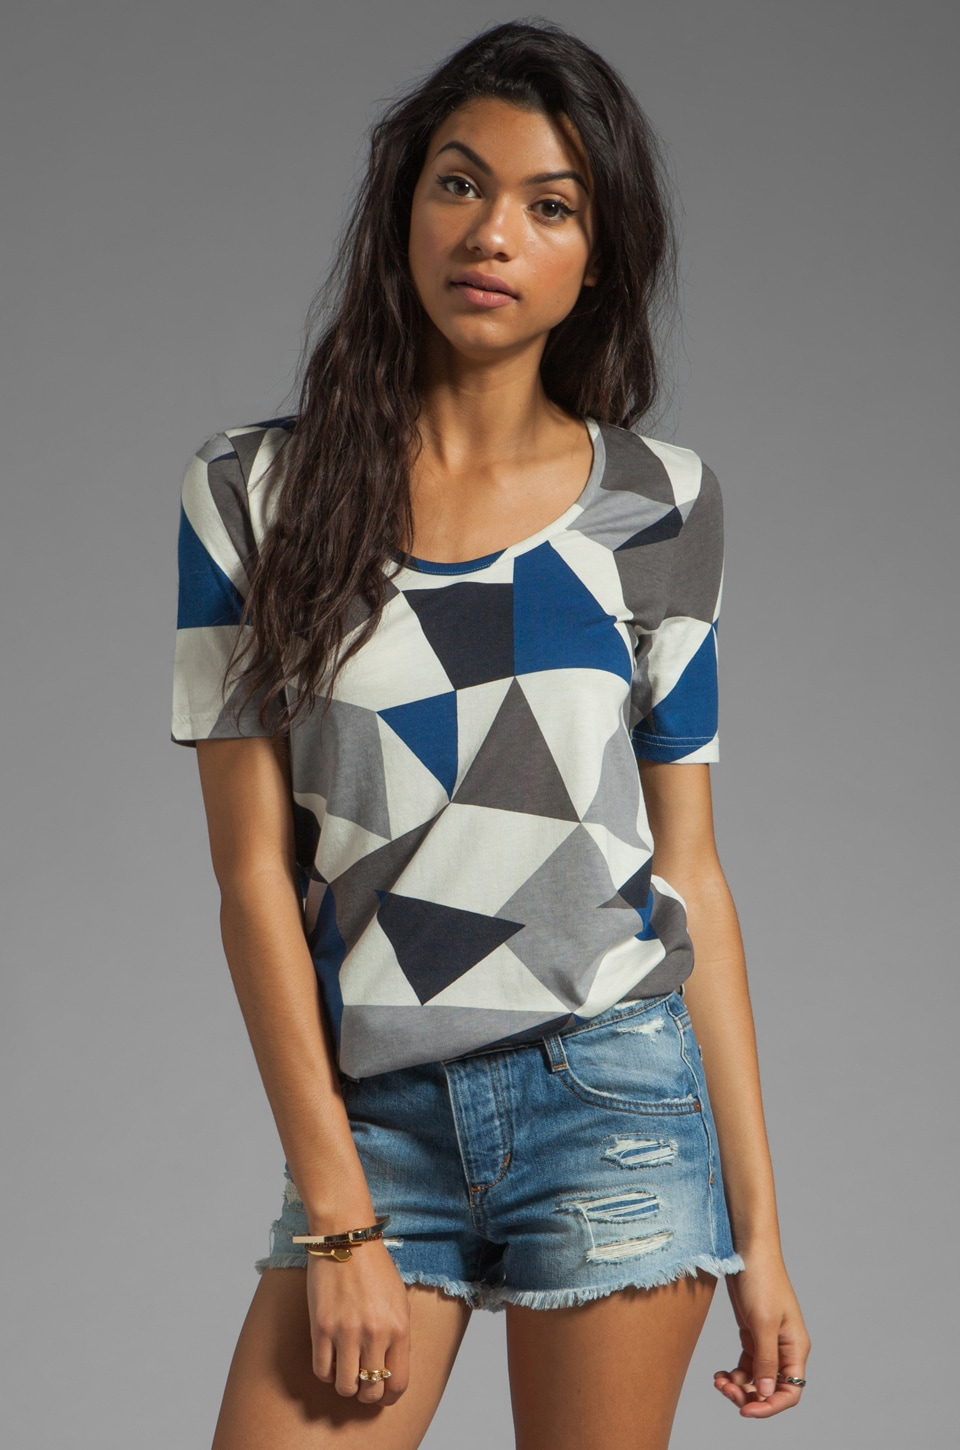 Marc by Marc Jacobs Taboo Knit Top in Normandy Blue Multi